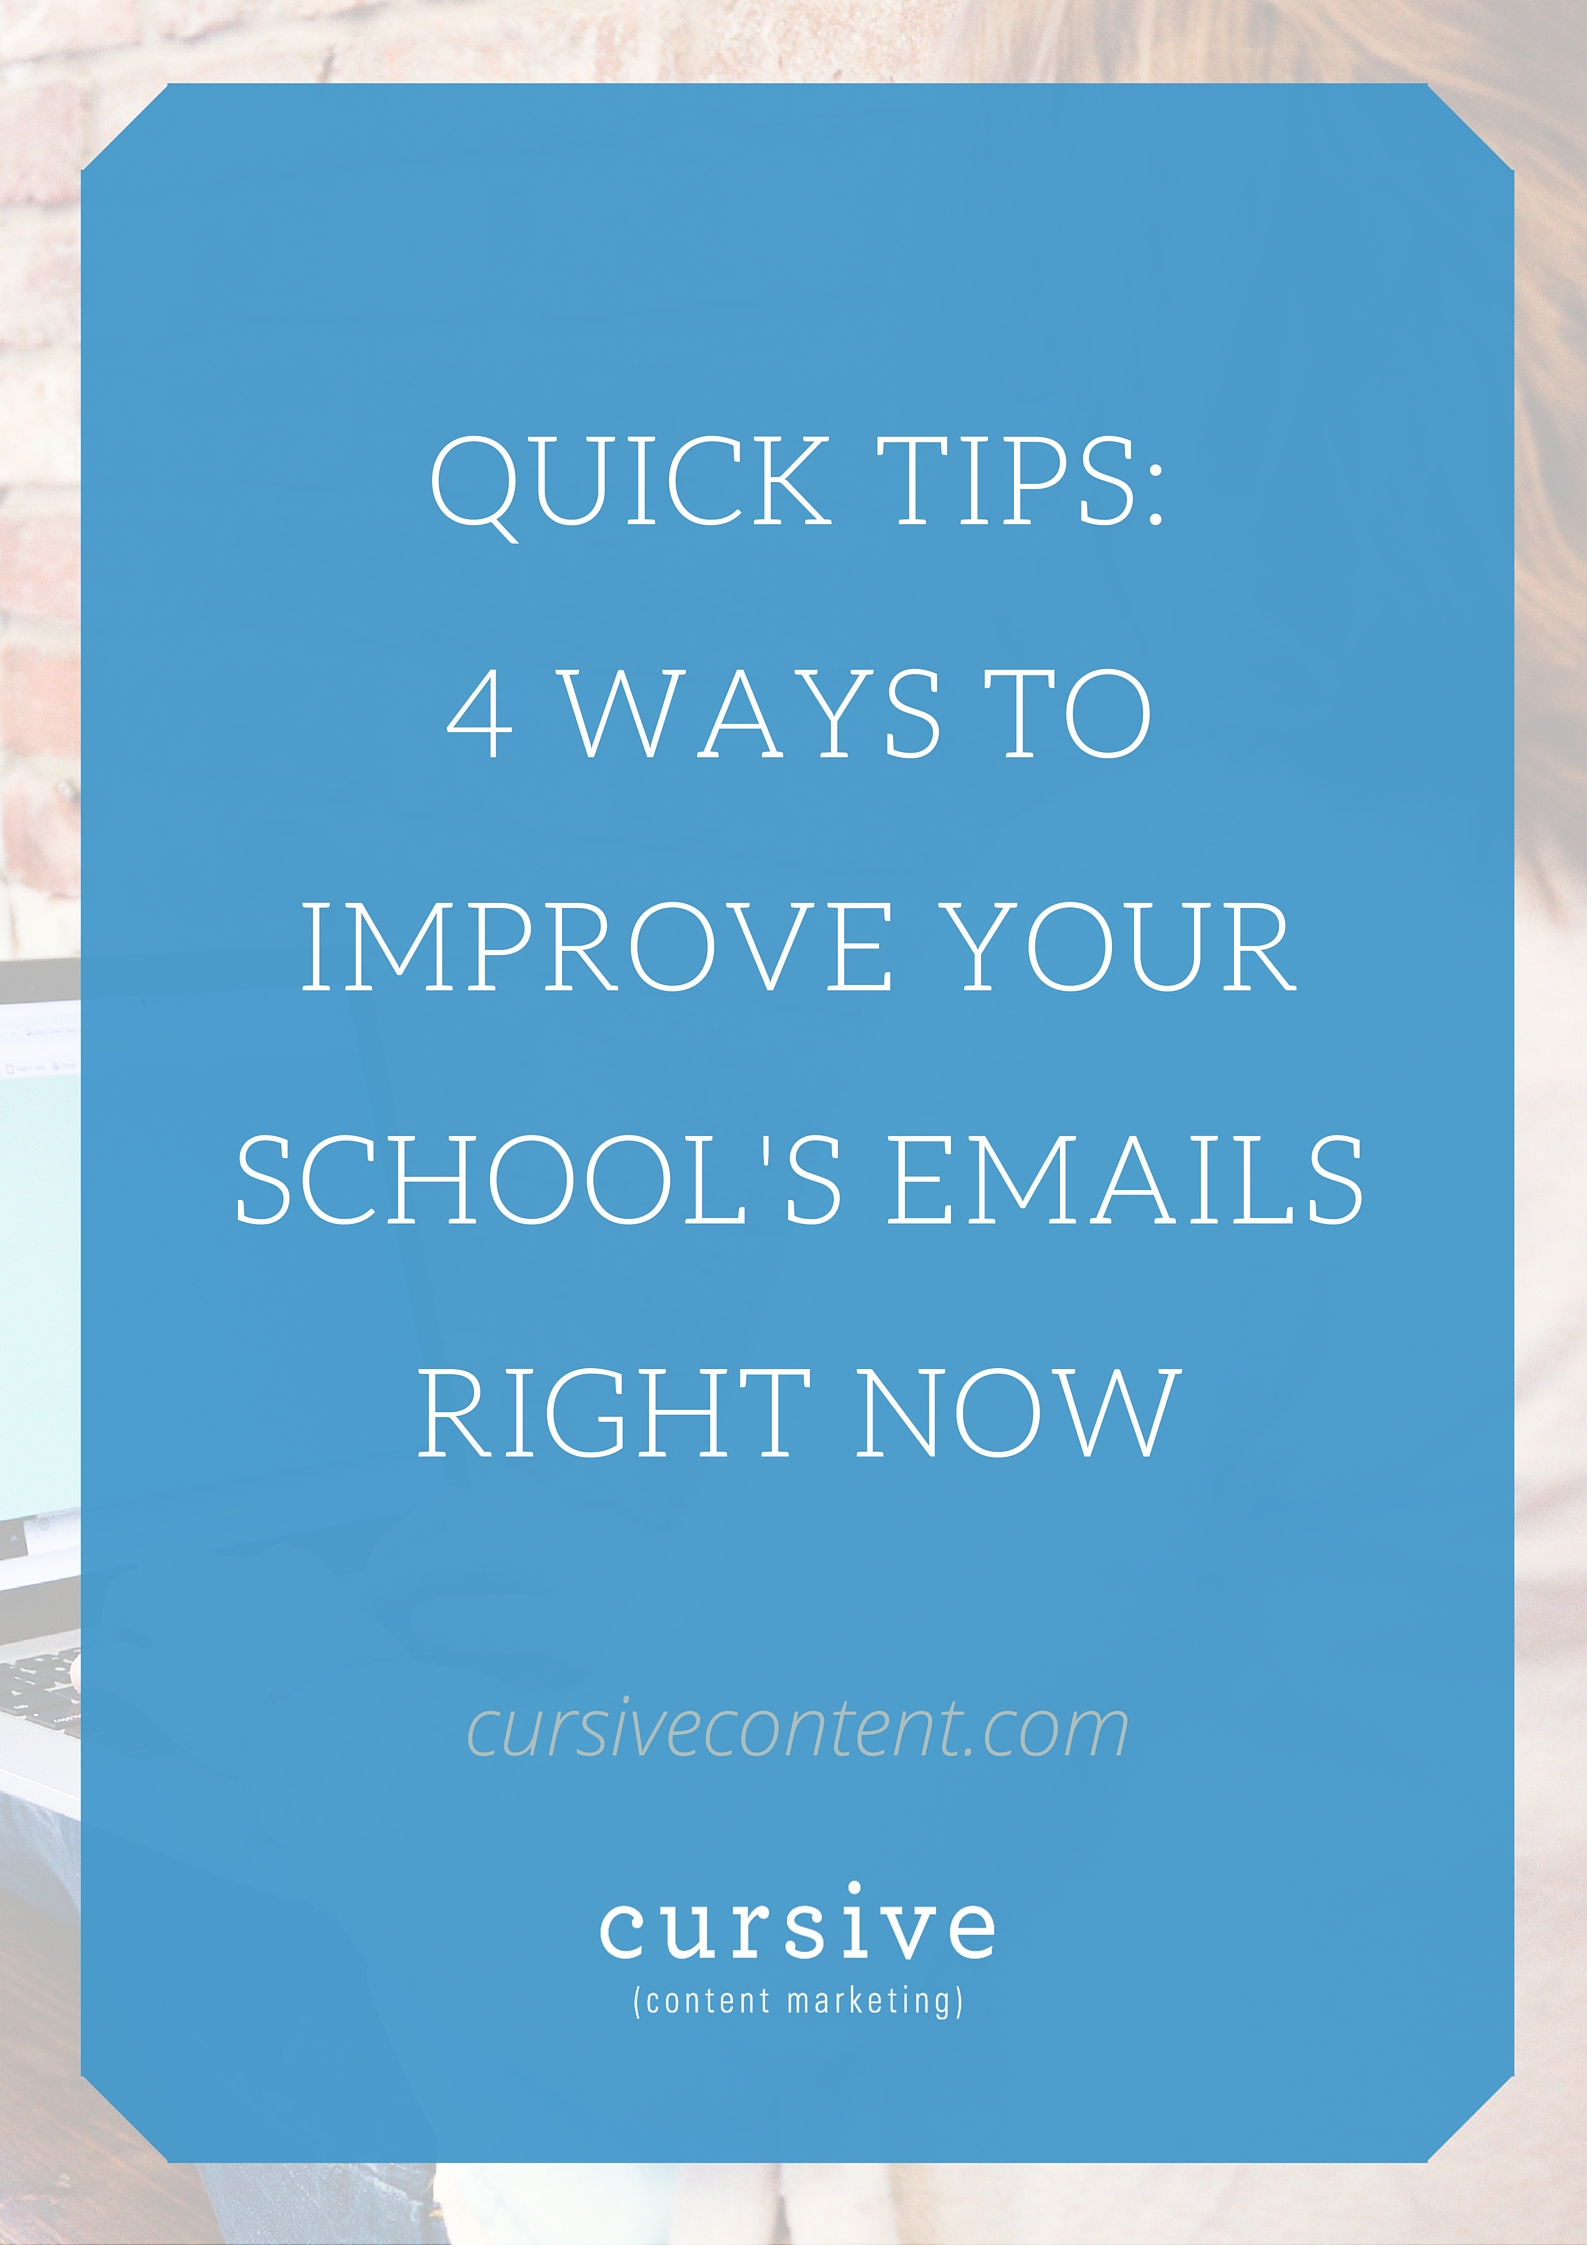 Quick Tips: 4 Ways to Improve Your School's Emails Right Now